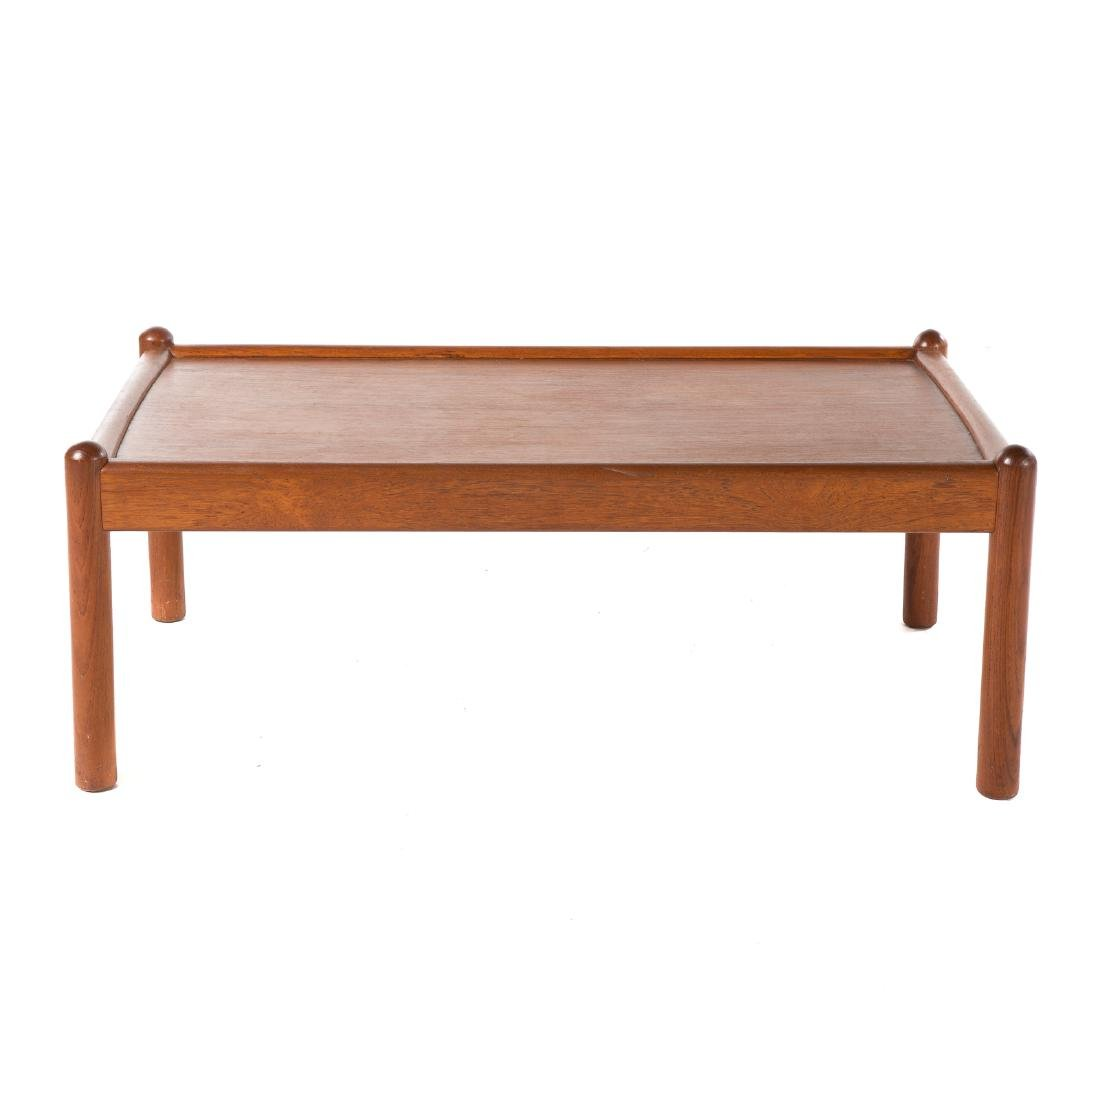 Danish Modern Teakwood Coffee Table